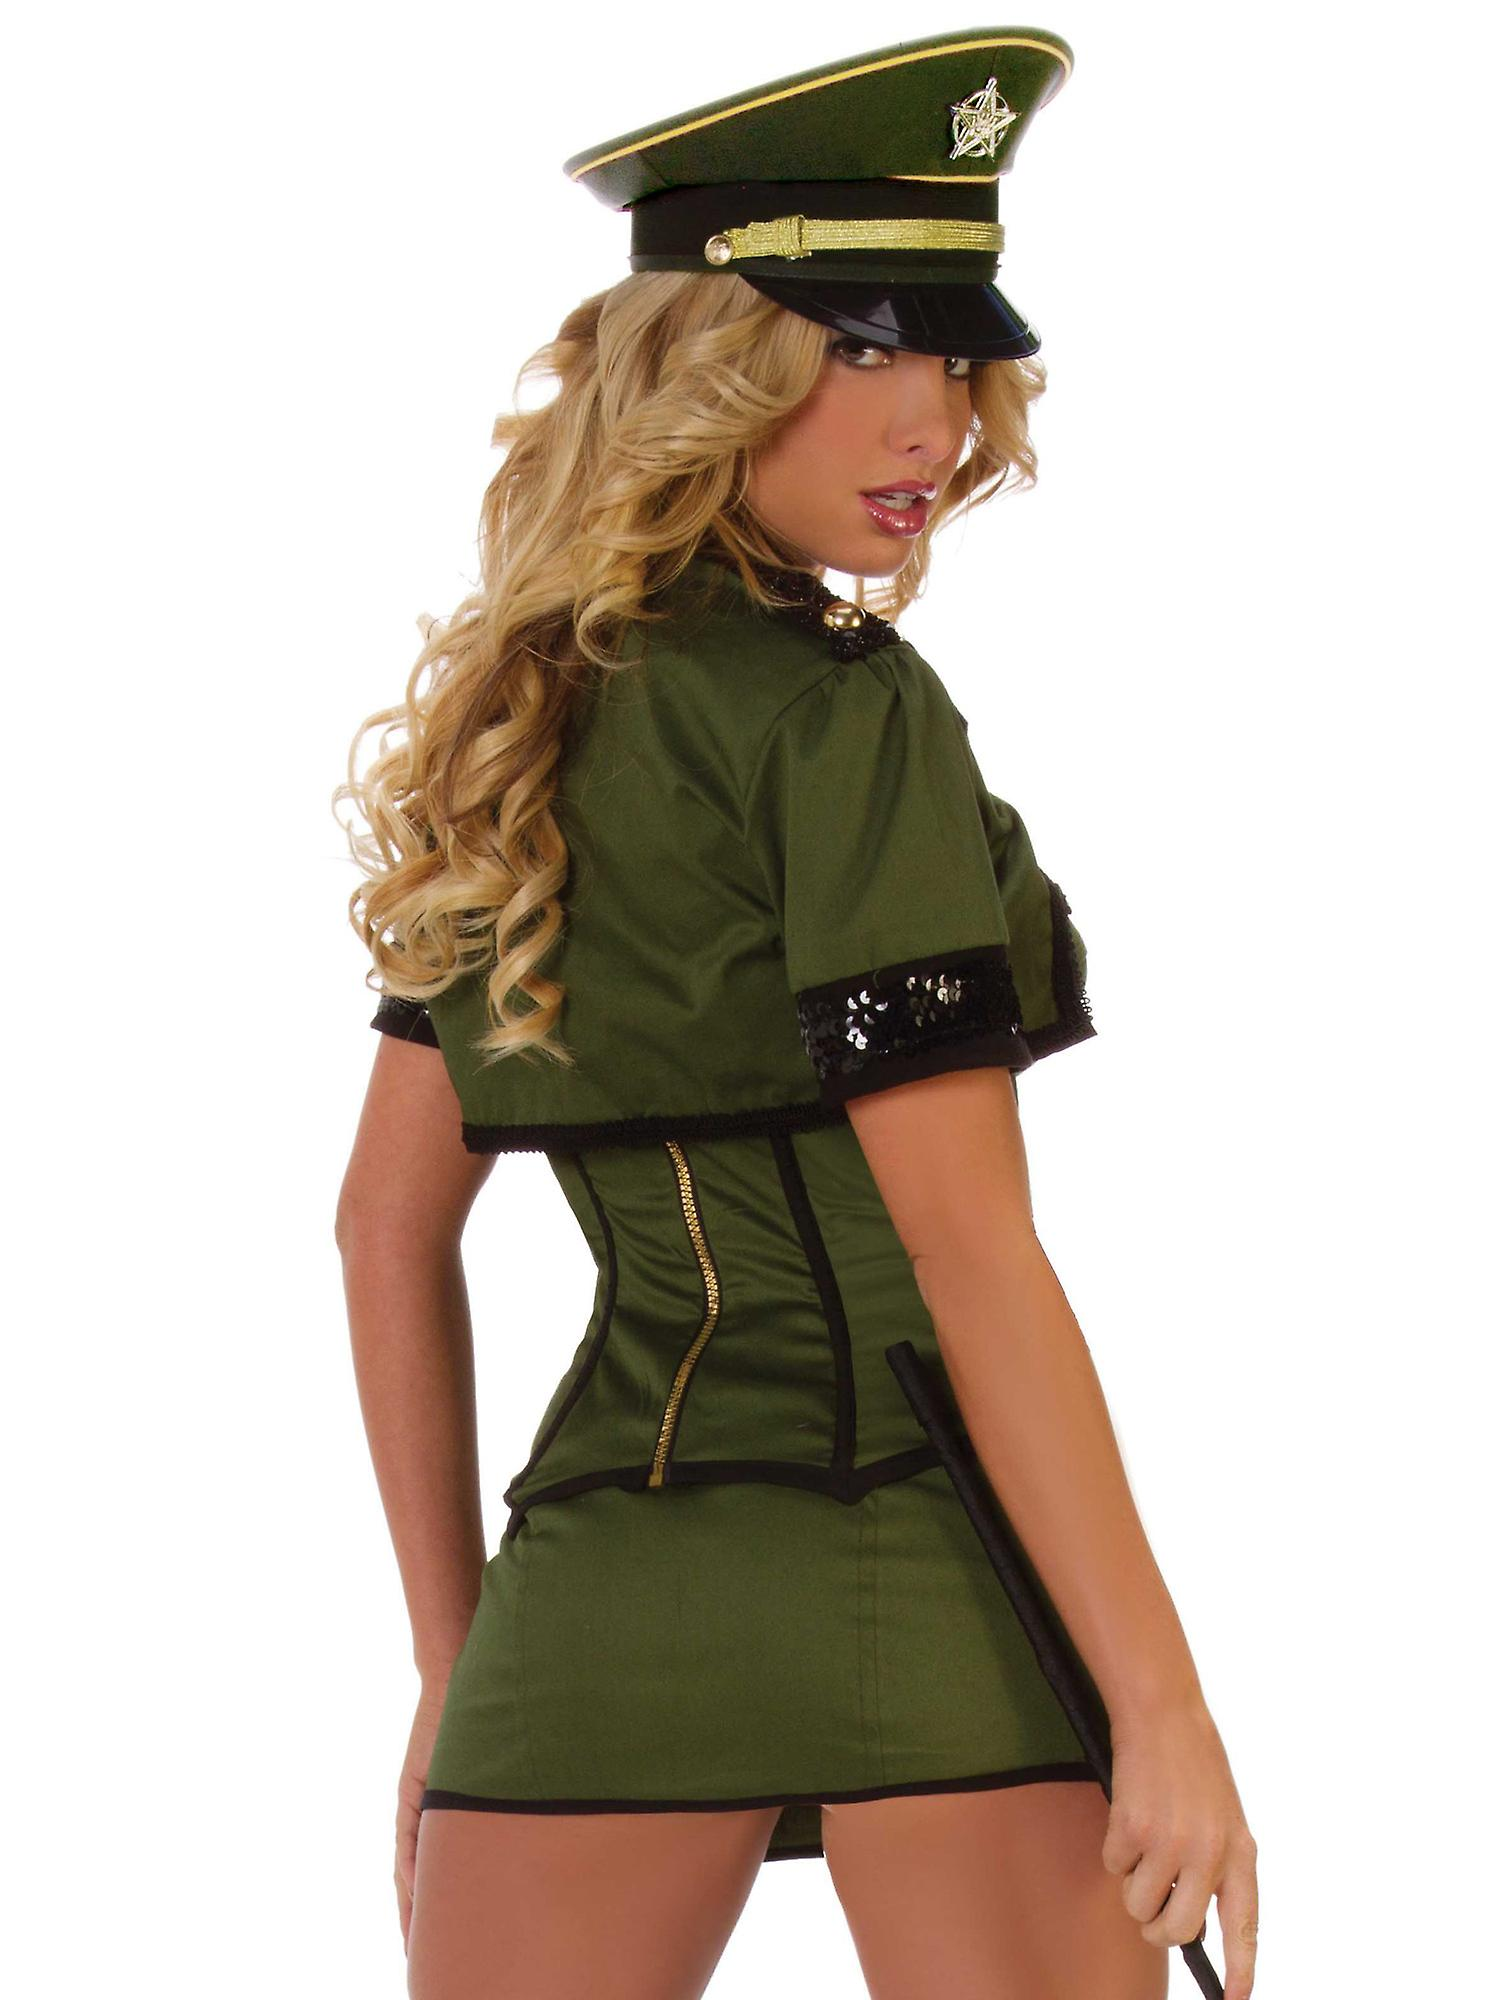 Starline Women's Kinky Army General Costume Outfit in Polyester Black & Green